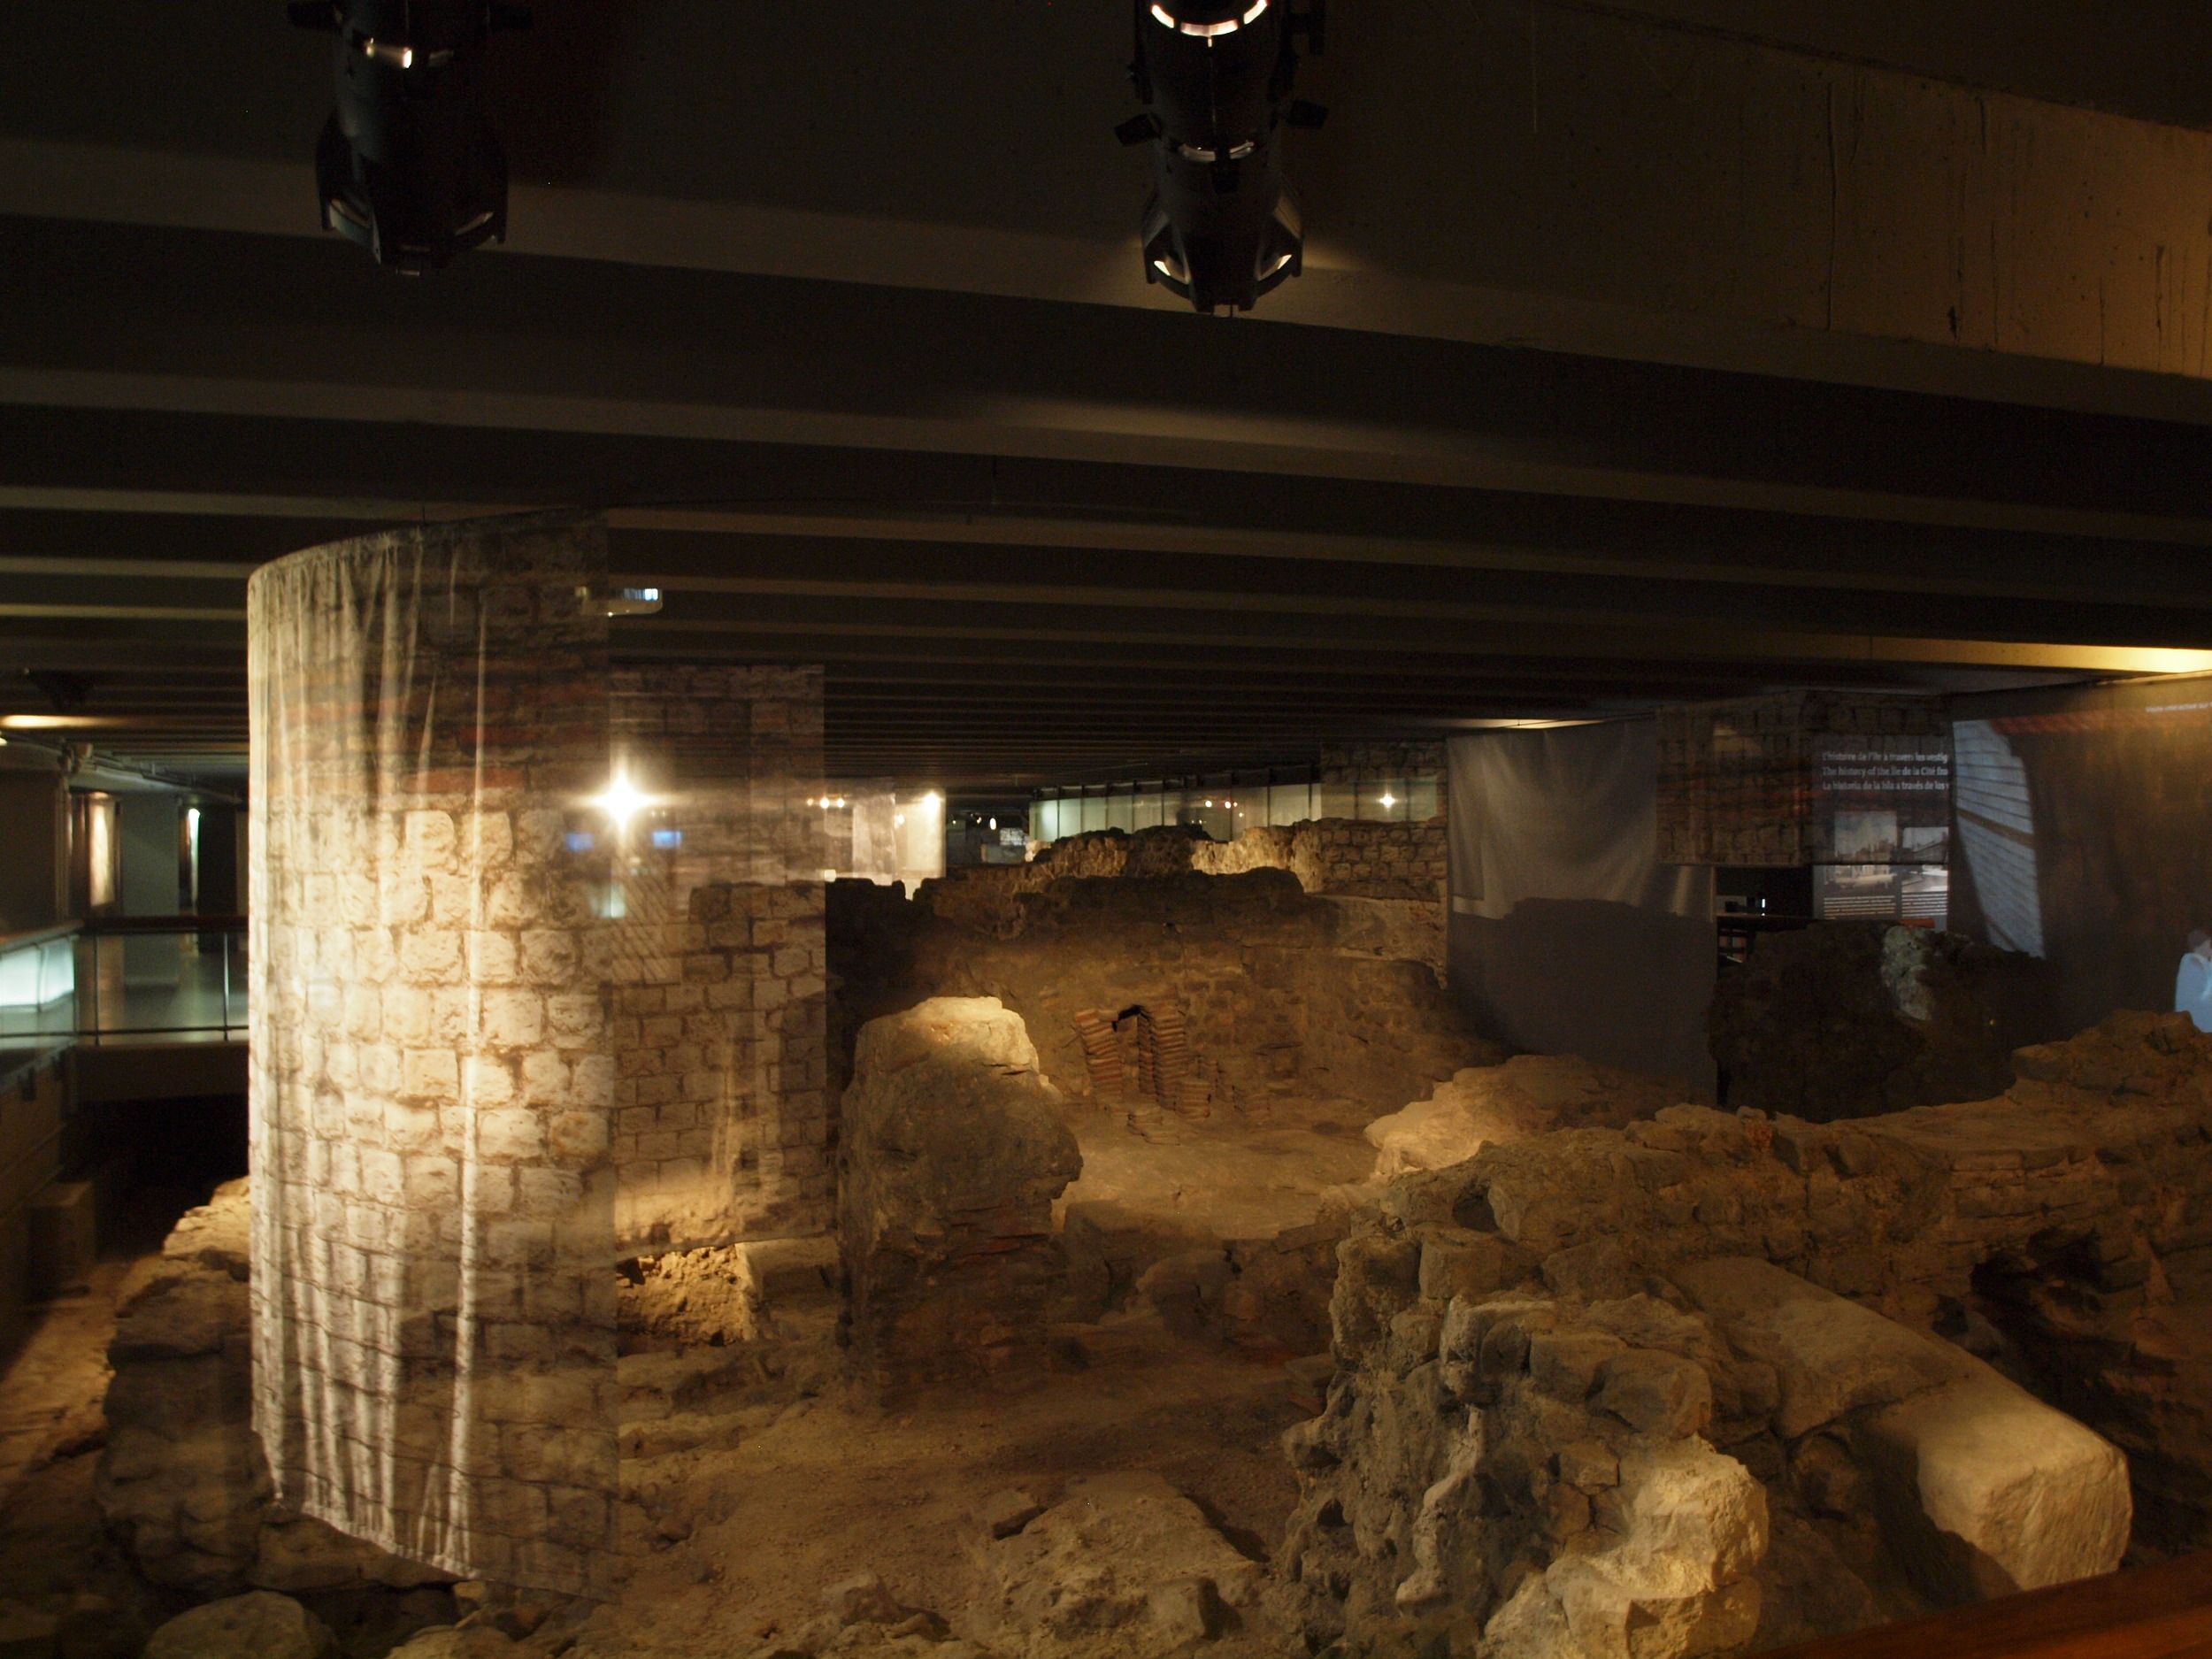 Archeological Crypt of the Parvis of Notre-Dame